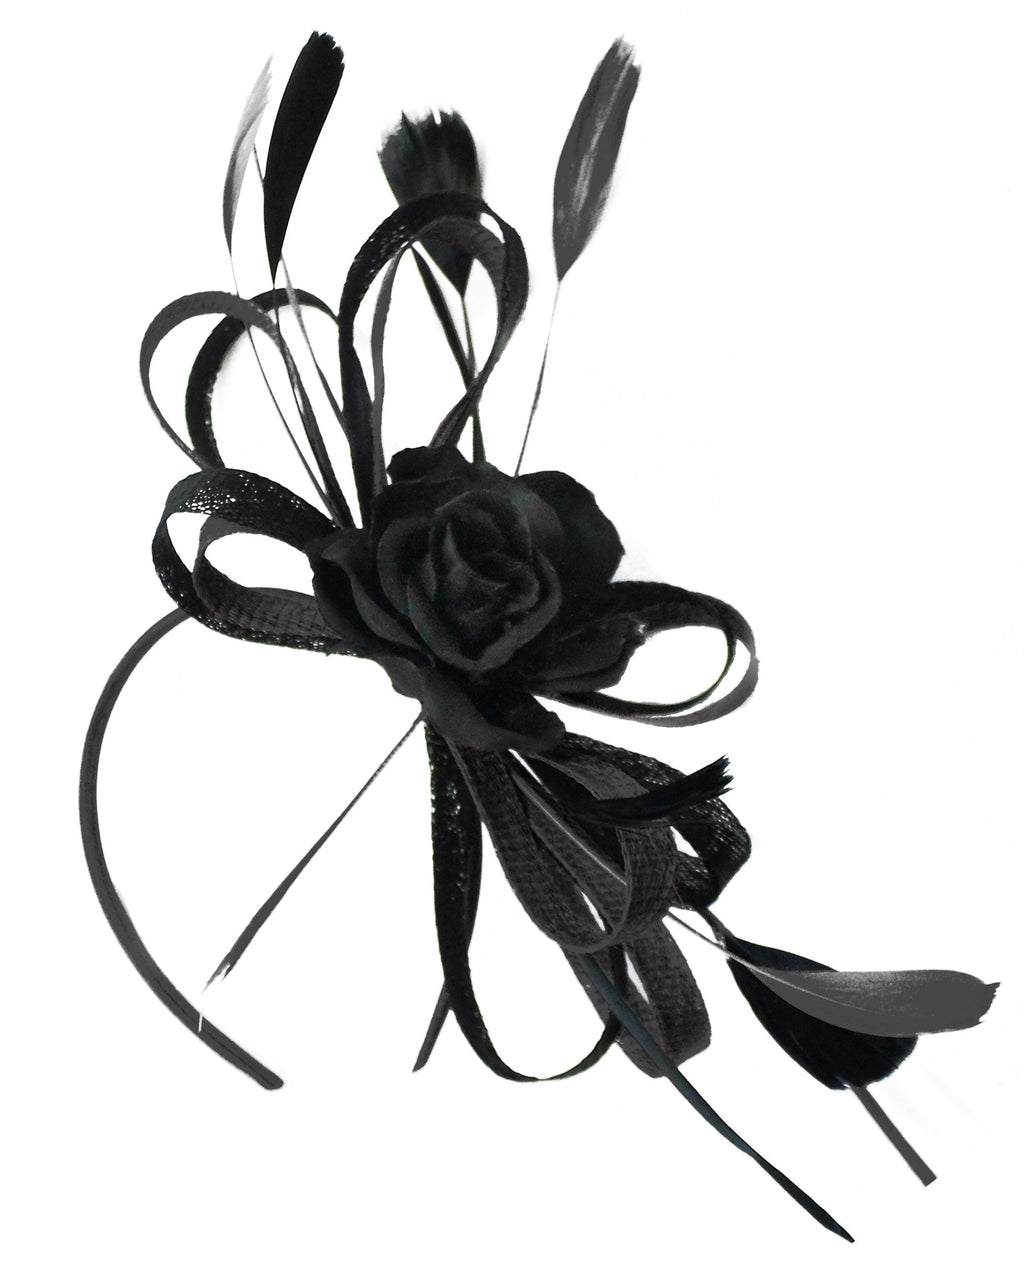 Caprilite Sinamay Rose Black Fascinator on Headband Alice Band UK Wedding Ascot Races Loop